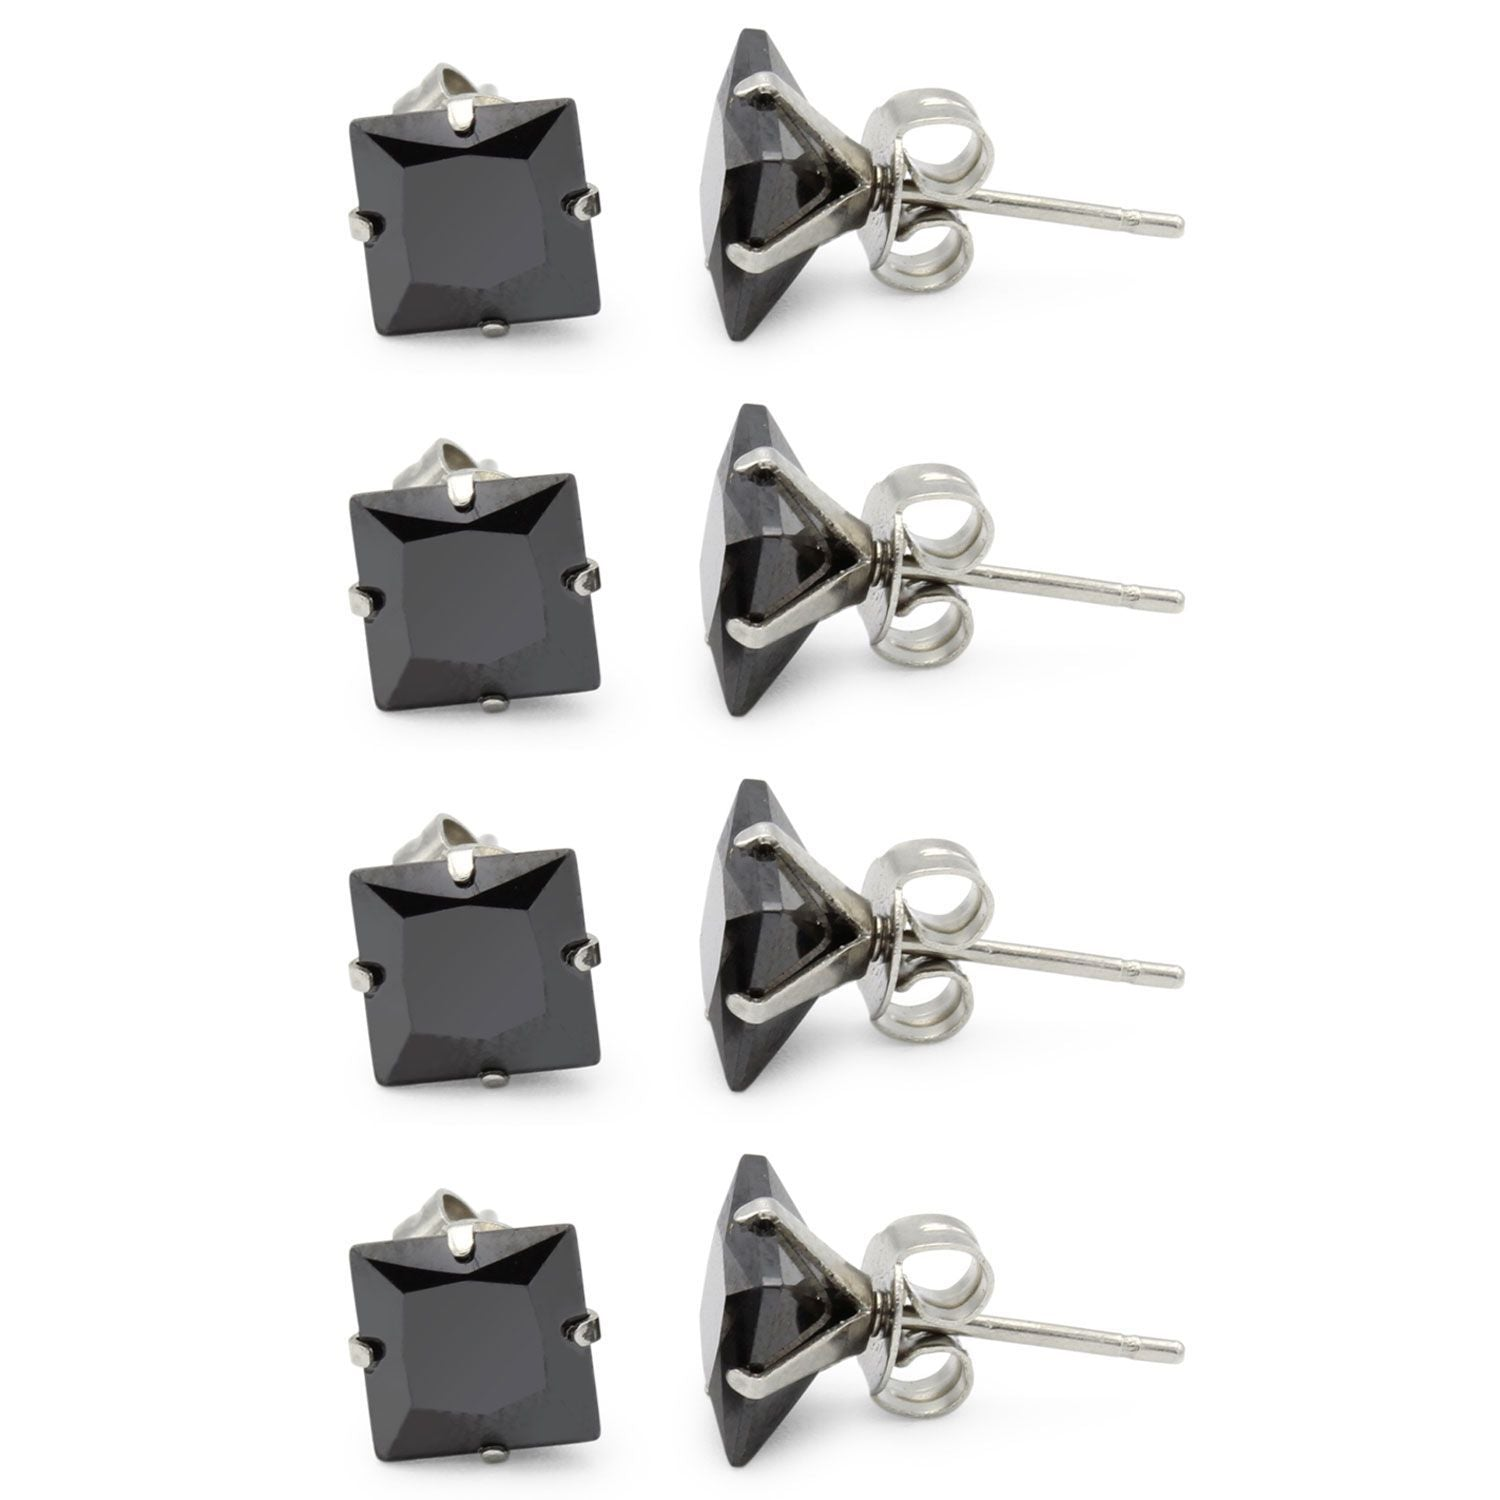 Stud Earring Set of 4 Cubic Zirconia Earrings Shinny Unisex Black Square Ear Jewelry